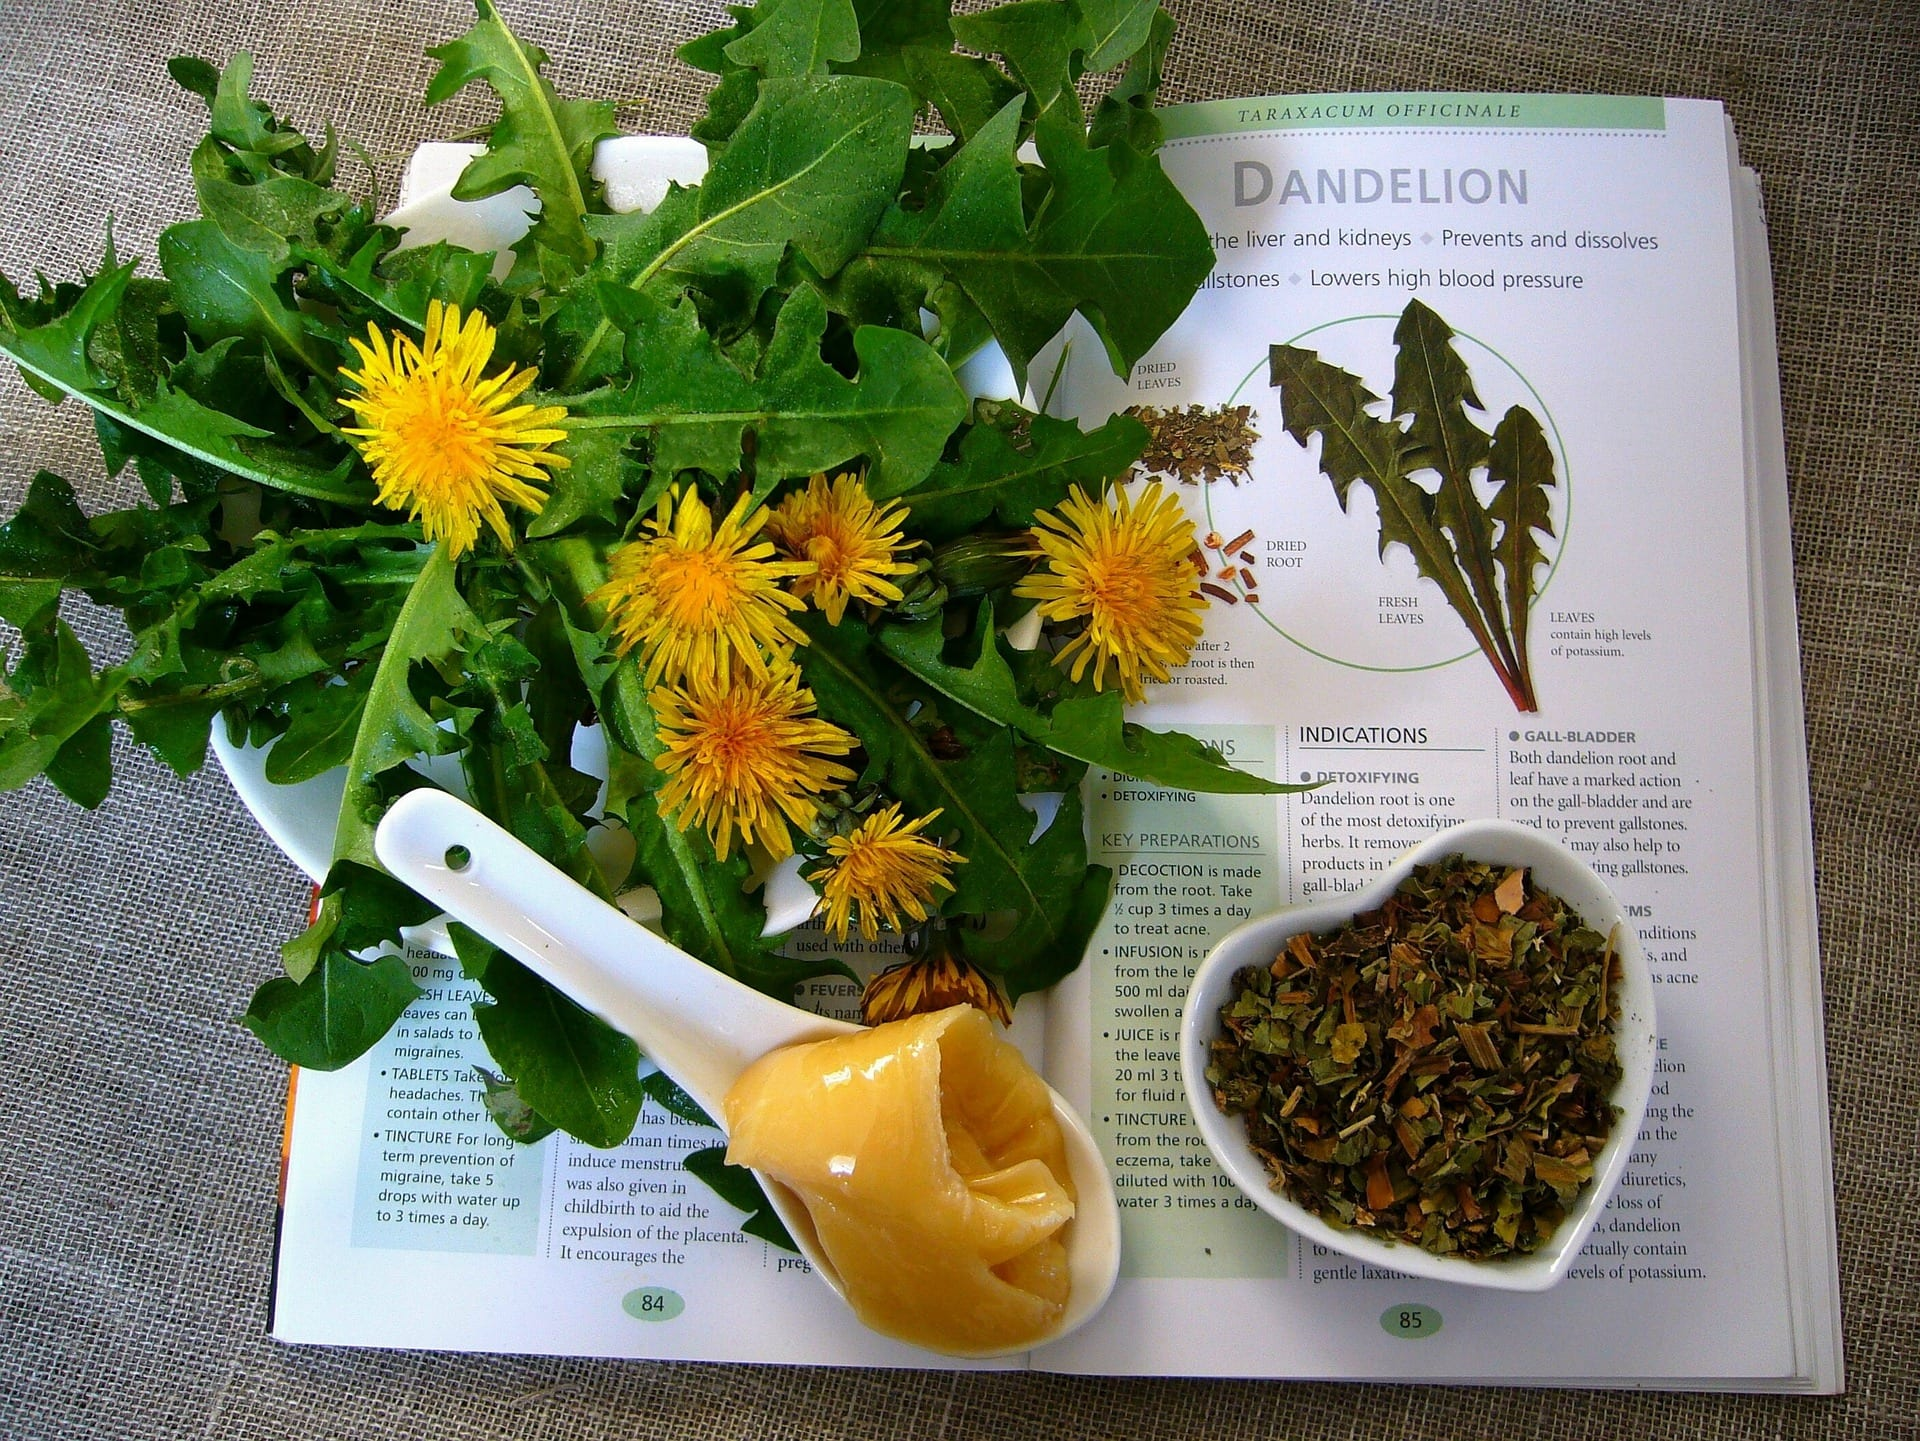 what are the health benefits of dandelion?